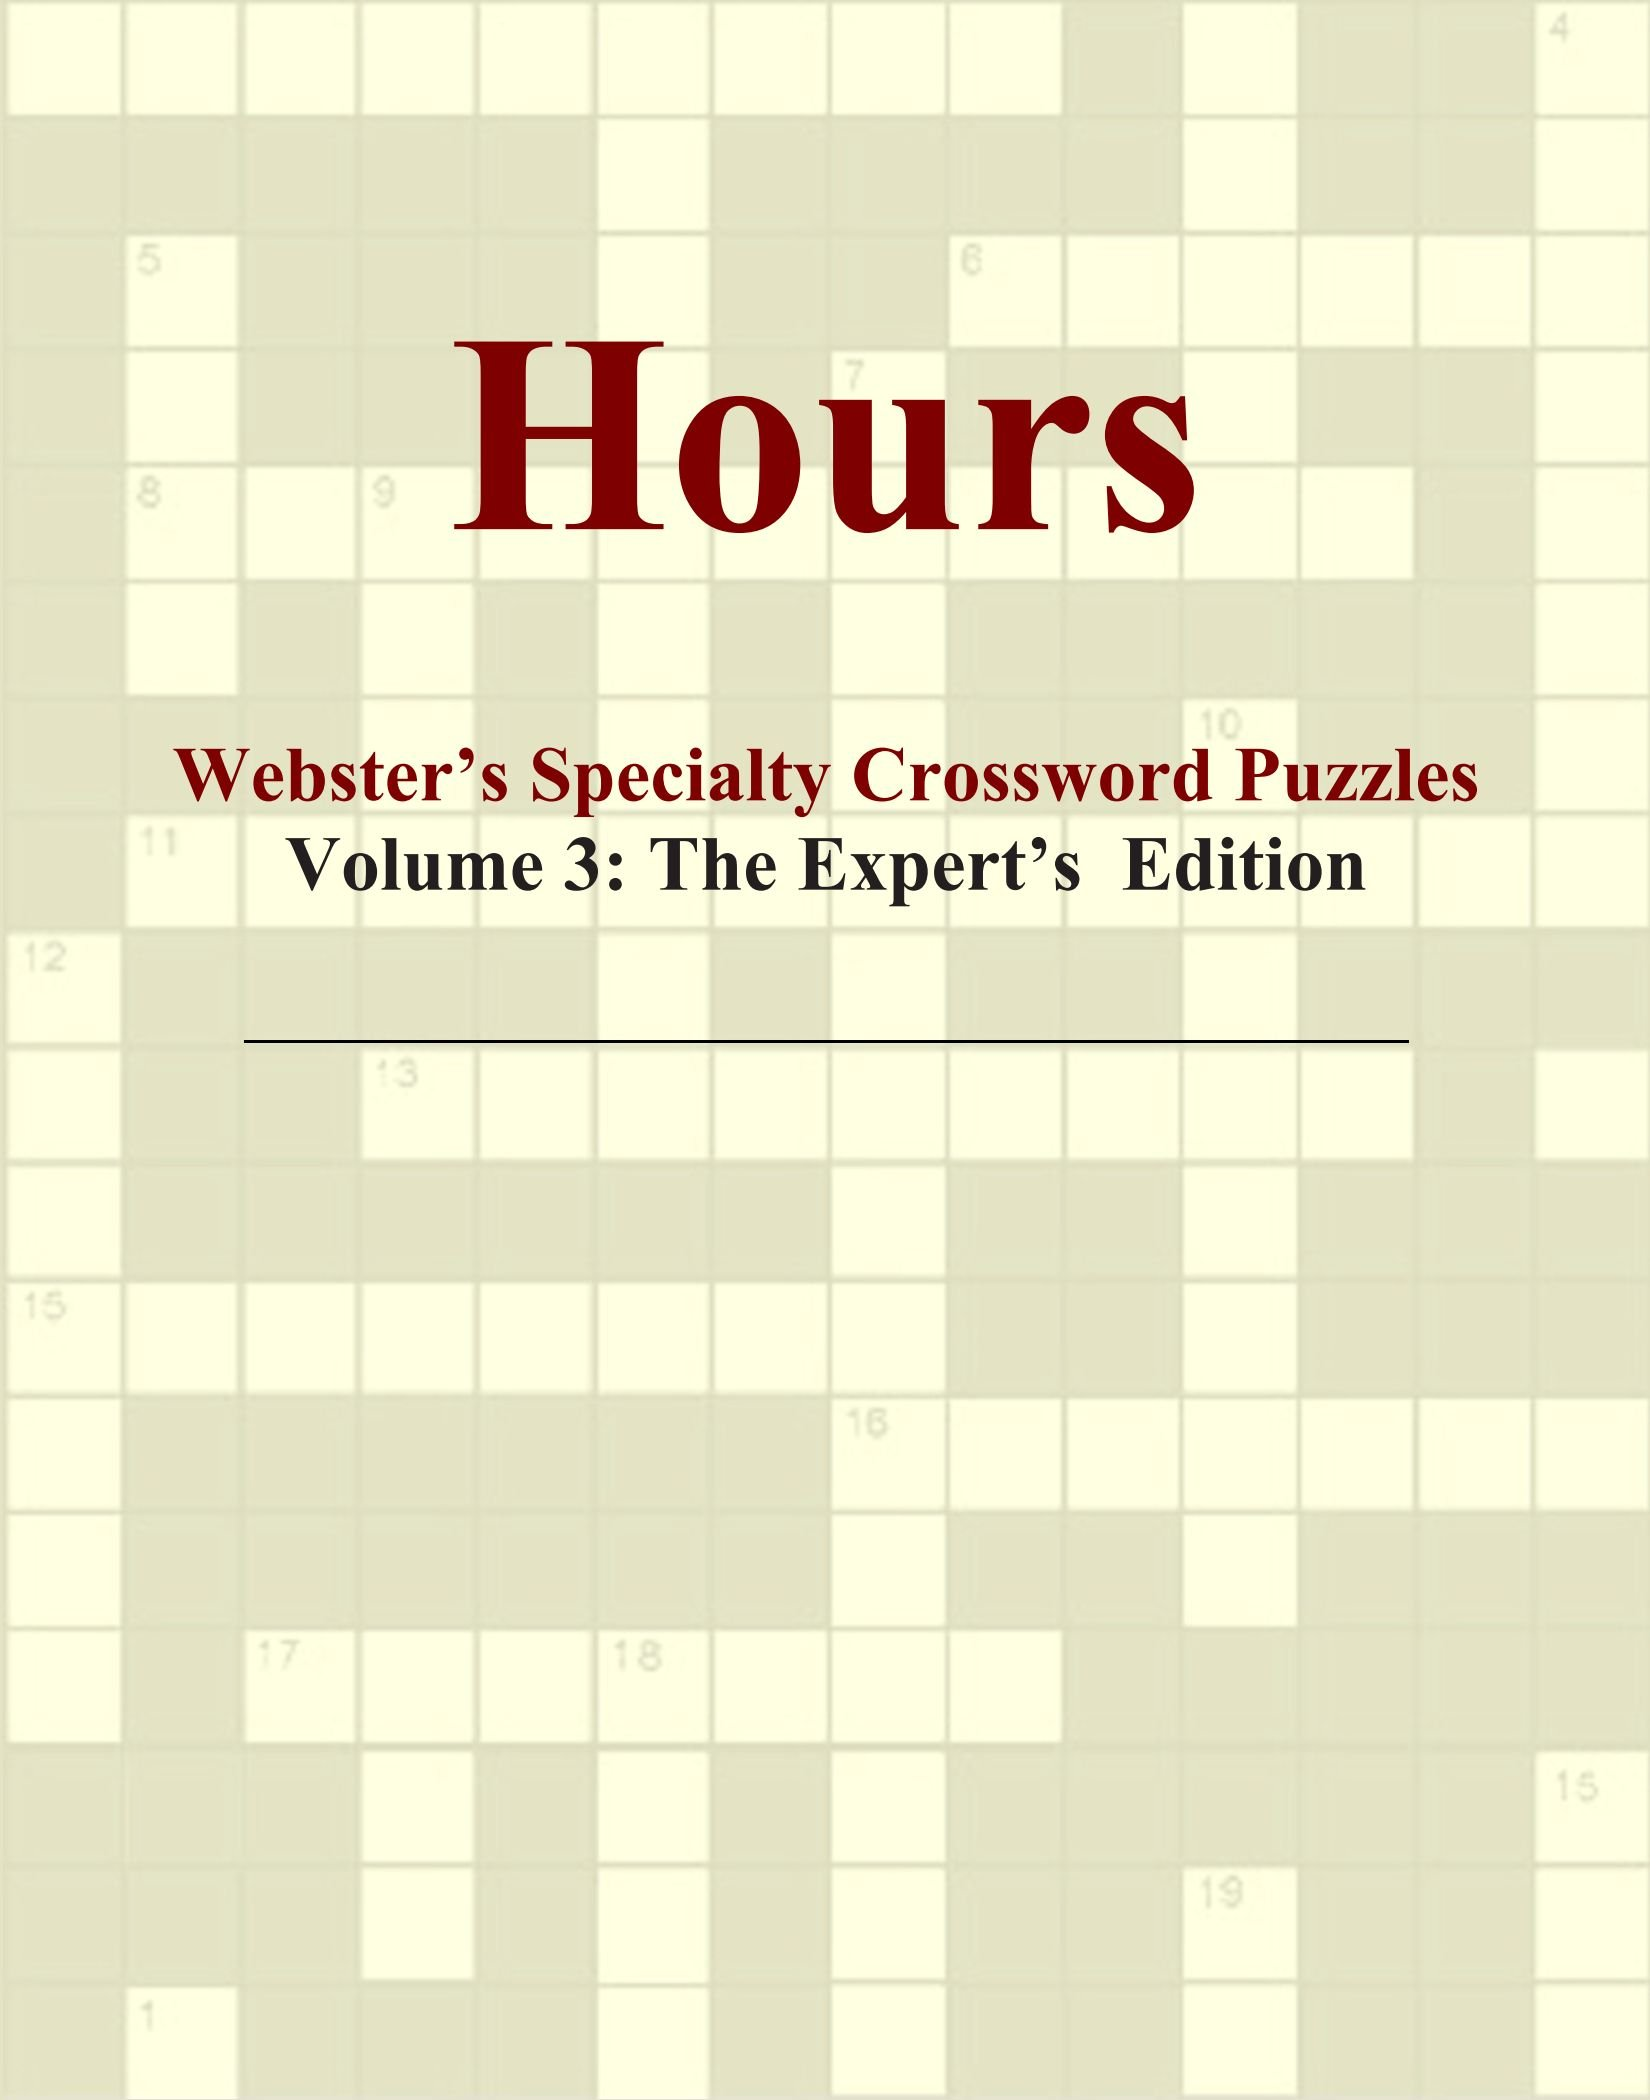 Hours - Webster's Specialty Crossword Puzzles, Volume 3: The Expert's Edition pdf epub